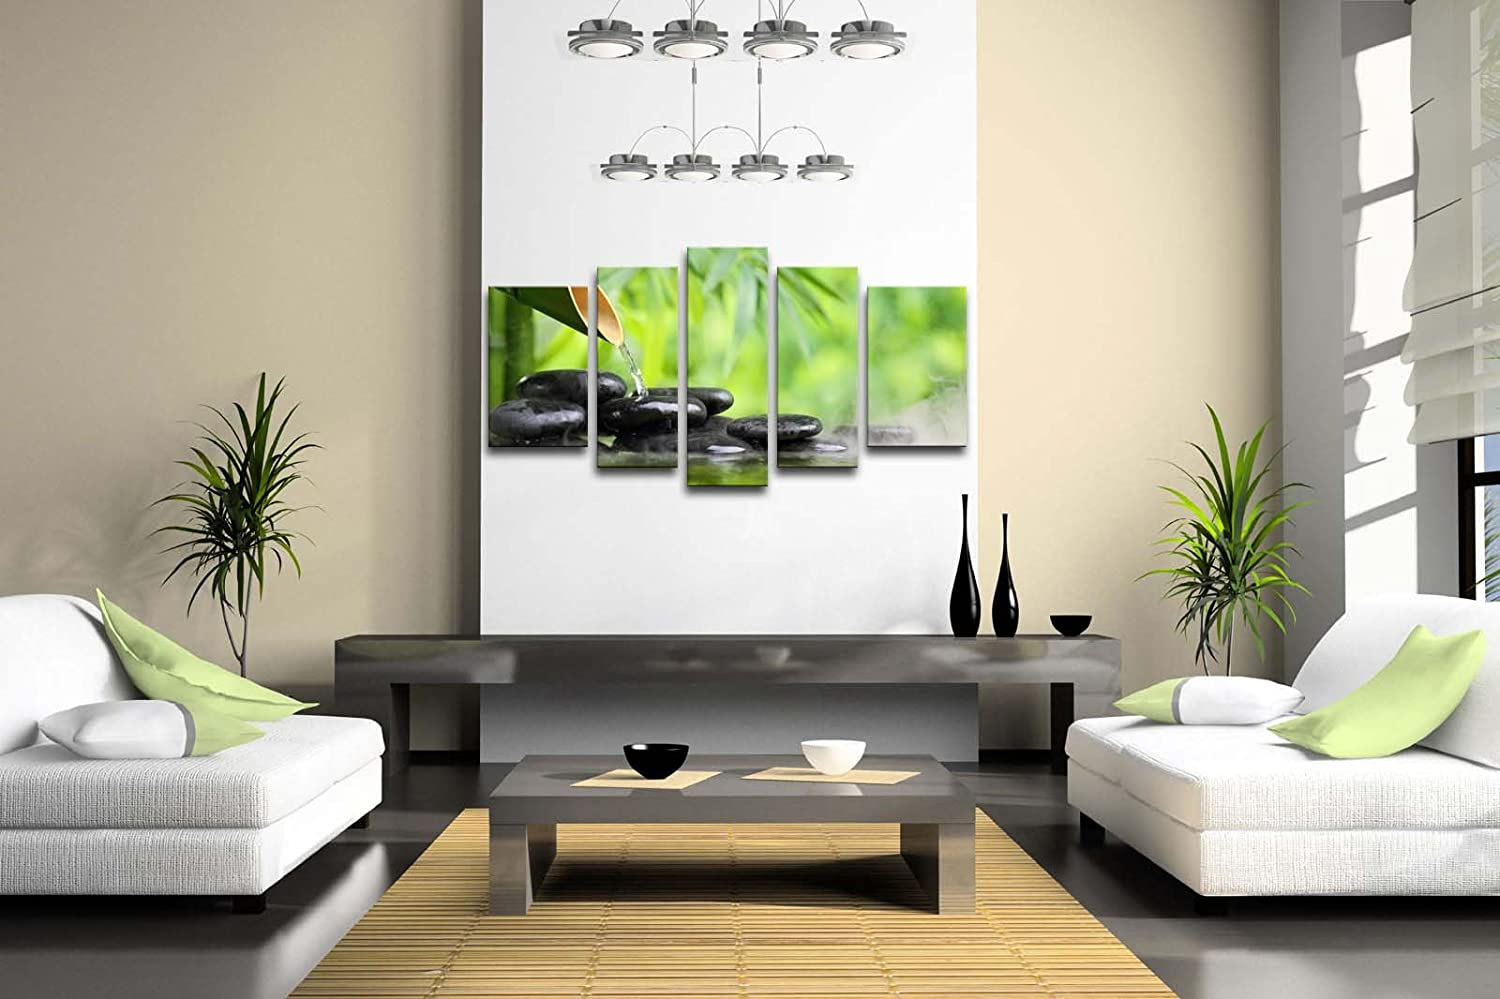 Amazon.com: 5 Panel Wall Art Green Spa Still Life With Bamboo ...